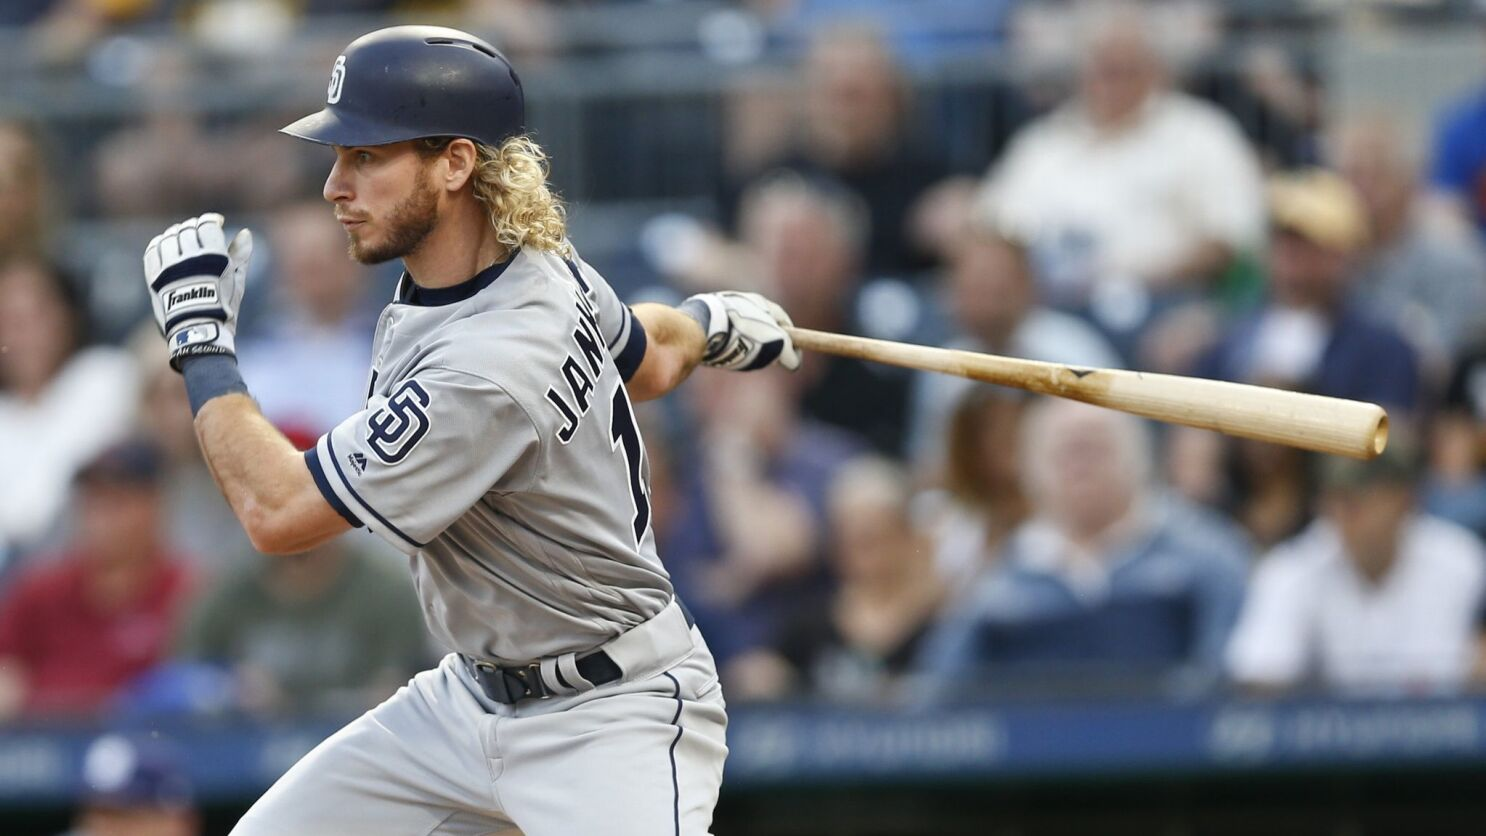 cf91a7229 The new Travis Jankowski sticking to plan as Padres leadoff hitter - The  San Diego Union-Tribune